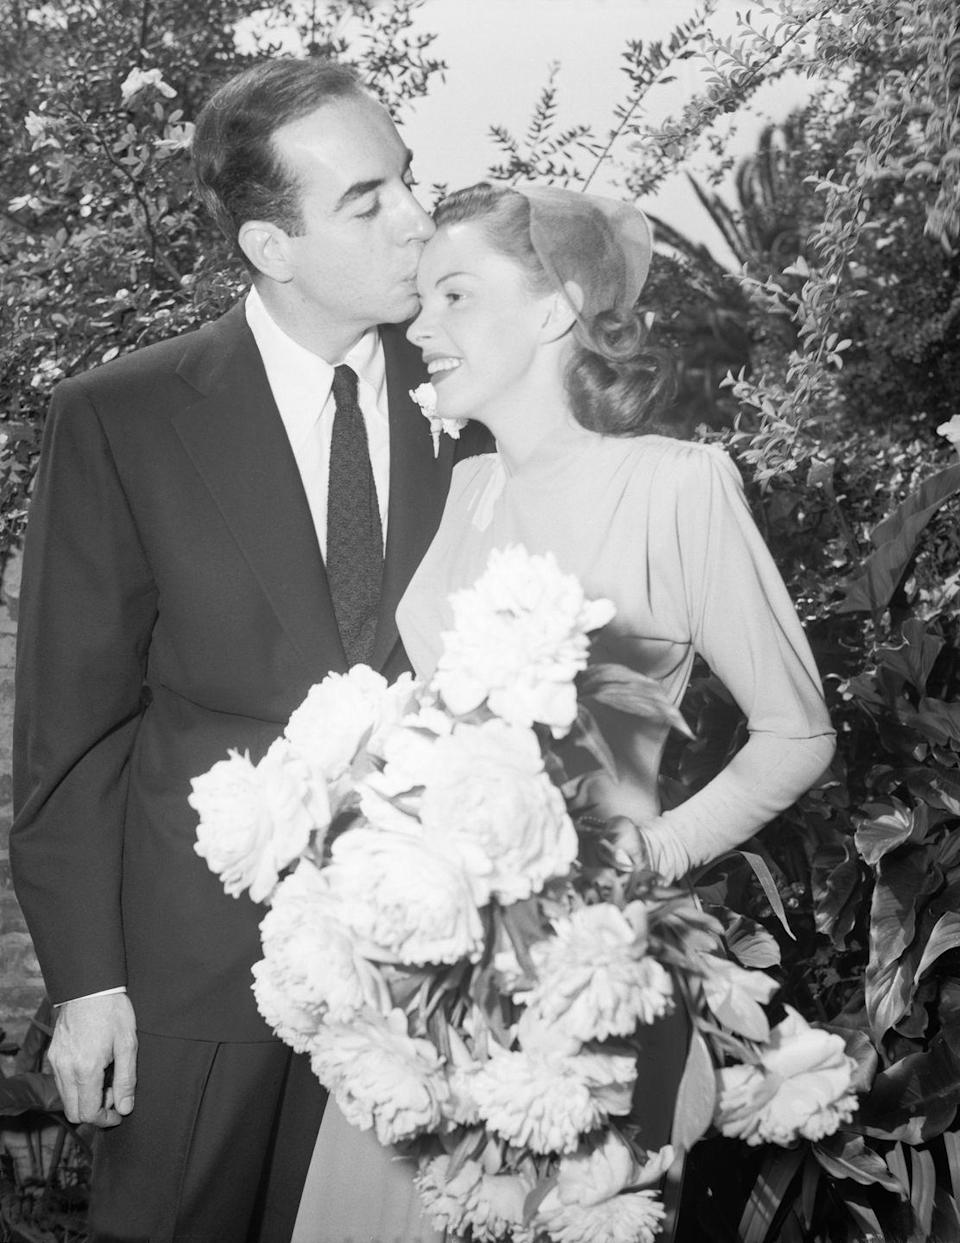 """<p>Judy Garland's bouquet of white peonies nearly filled the entire camera frame as she and Vincente Minnelli said """"I do"""" in the backyard of Garland's mother's home in Hollywood. </p><p><strong>More:</strong> <a href=""""https://www.townandcountrymag.com/leisure/arts-and-culture/a30284220/judy-garland-husbands/"""" rel=""""nofollow noopener"""" target=""""_blank"""" data-ylk=""""slk:Who Were Judy Garland's Five Husbands?"""" class=""""link rapid-noclick-resp"""">Who Were Judy Garland's Five Husbands?</a></p>"""